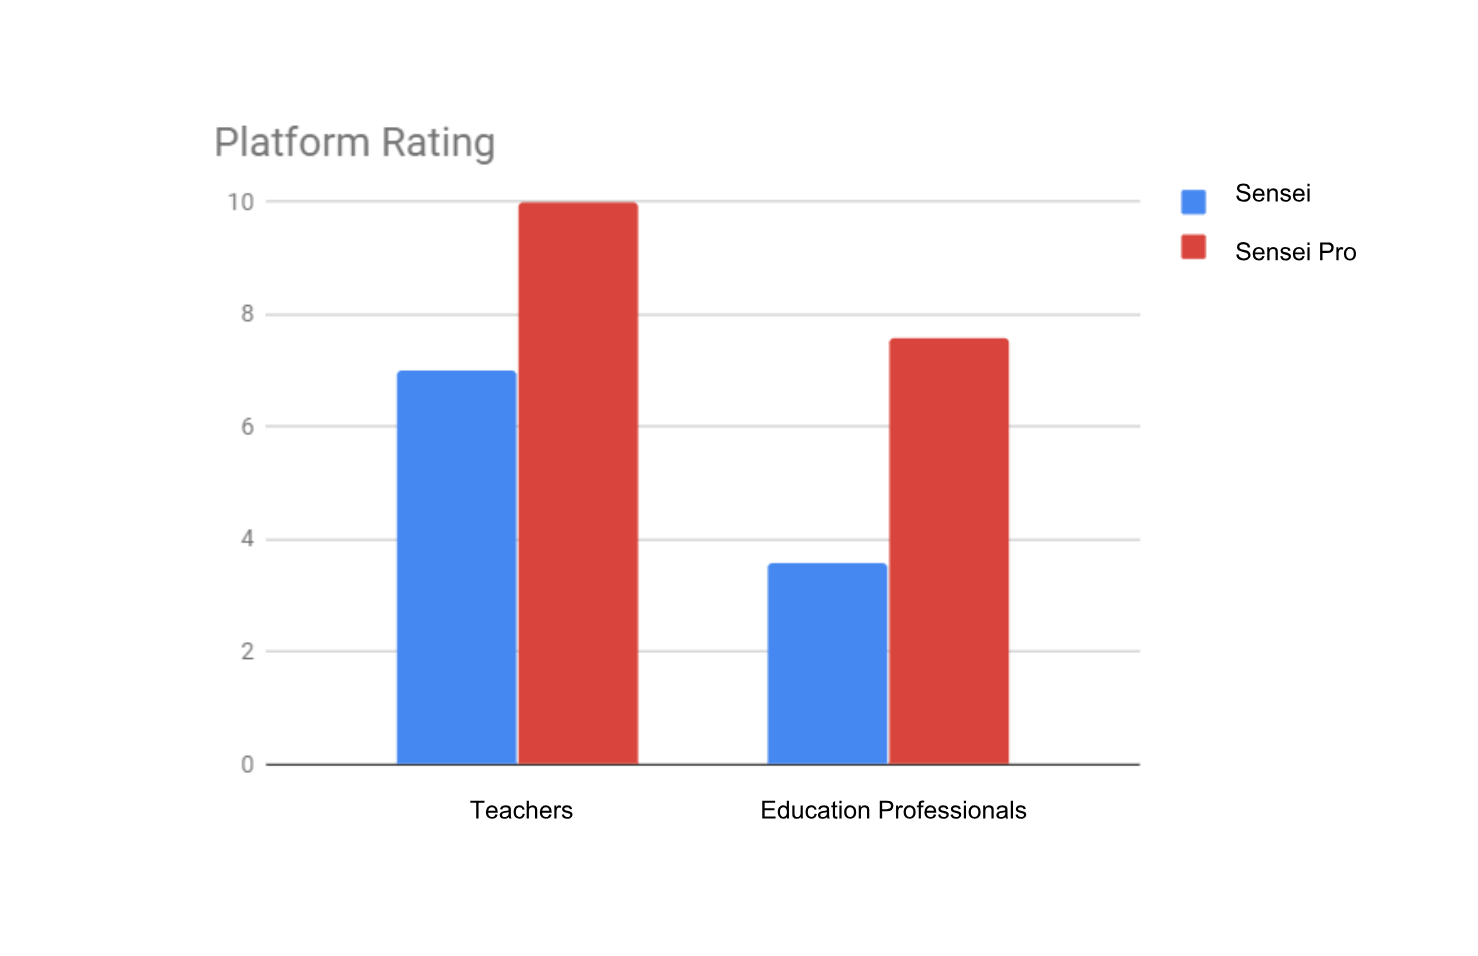 When asked to give a rating regarding to the usability of both products within 1 to 10, both teachers and educational professionals rated Sensei Pro higher than Sensei